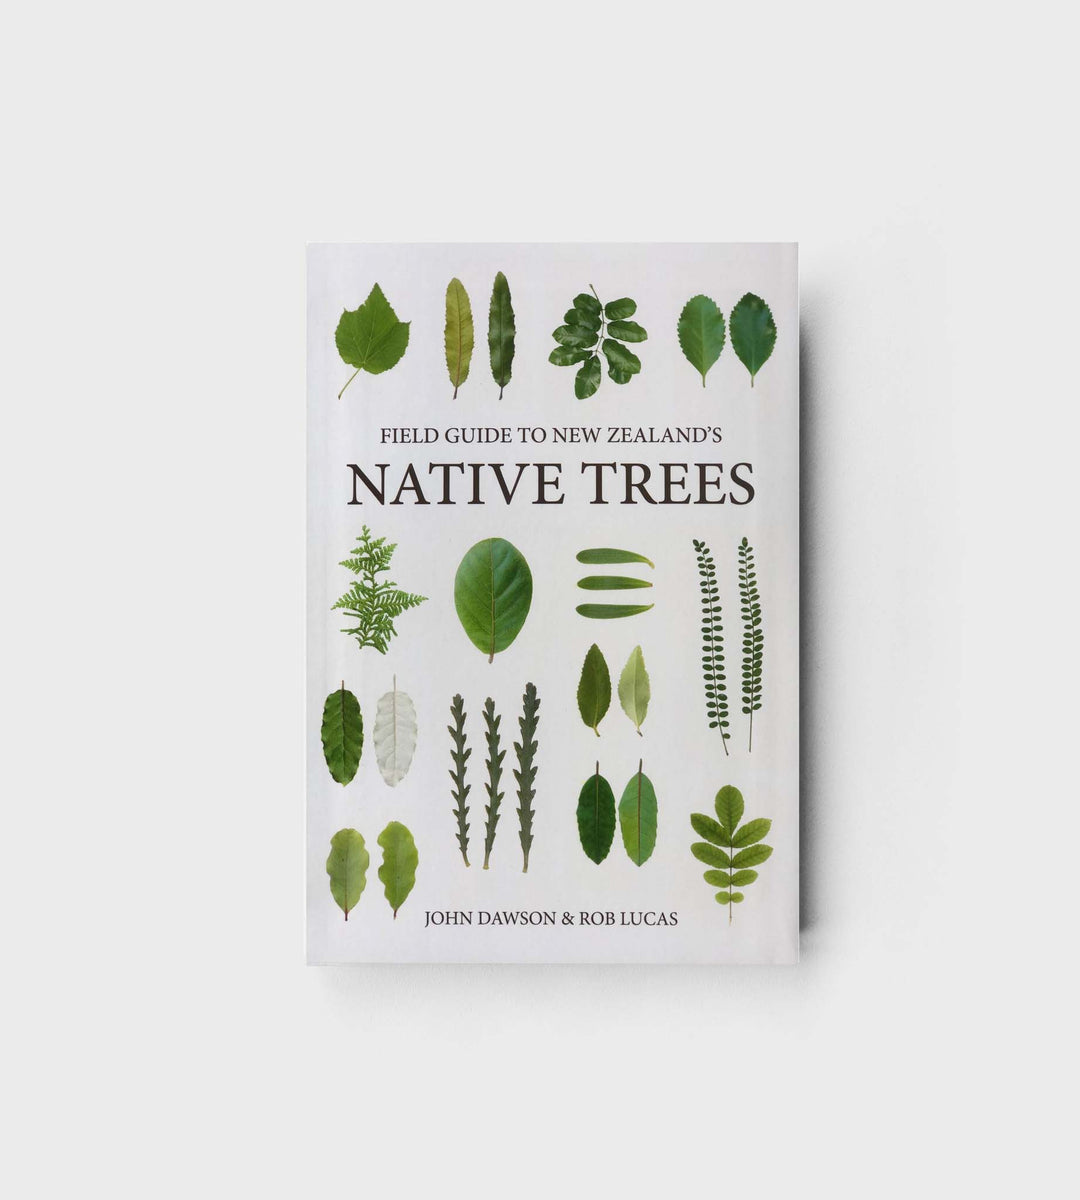 Field Guide to New Zealand's Native Trees | by John Dawson & Rob Lucas